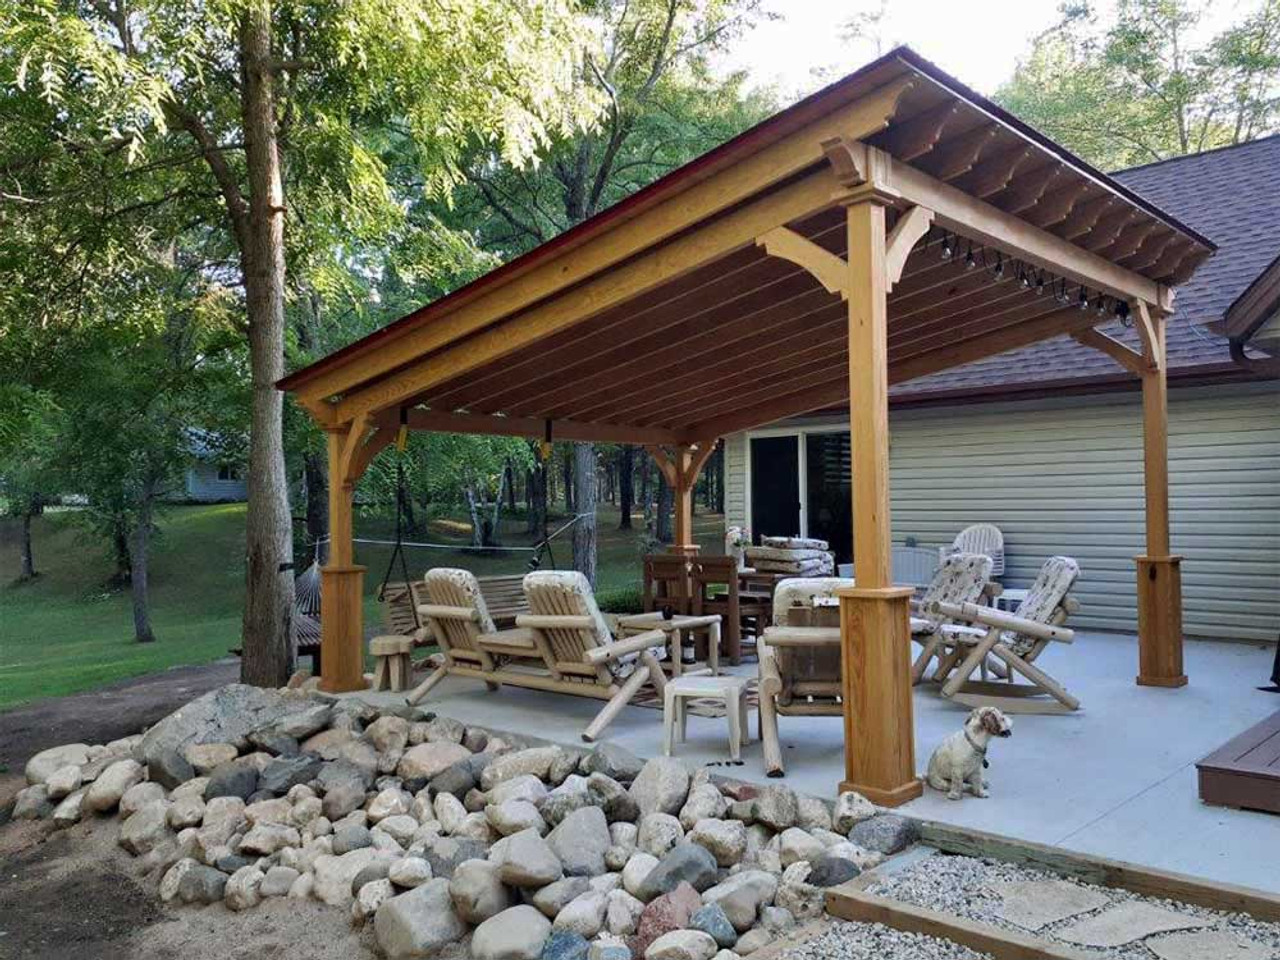 14x16 Lean-To Pavilion pressure treated pine Crivitz Wisconsin